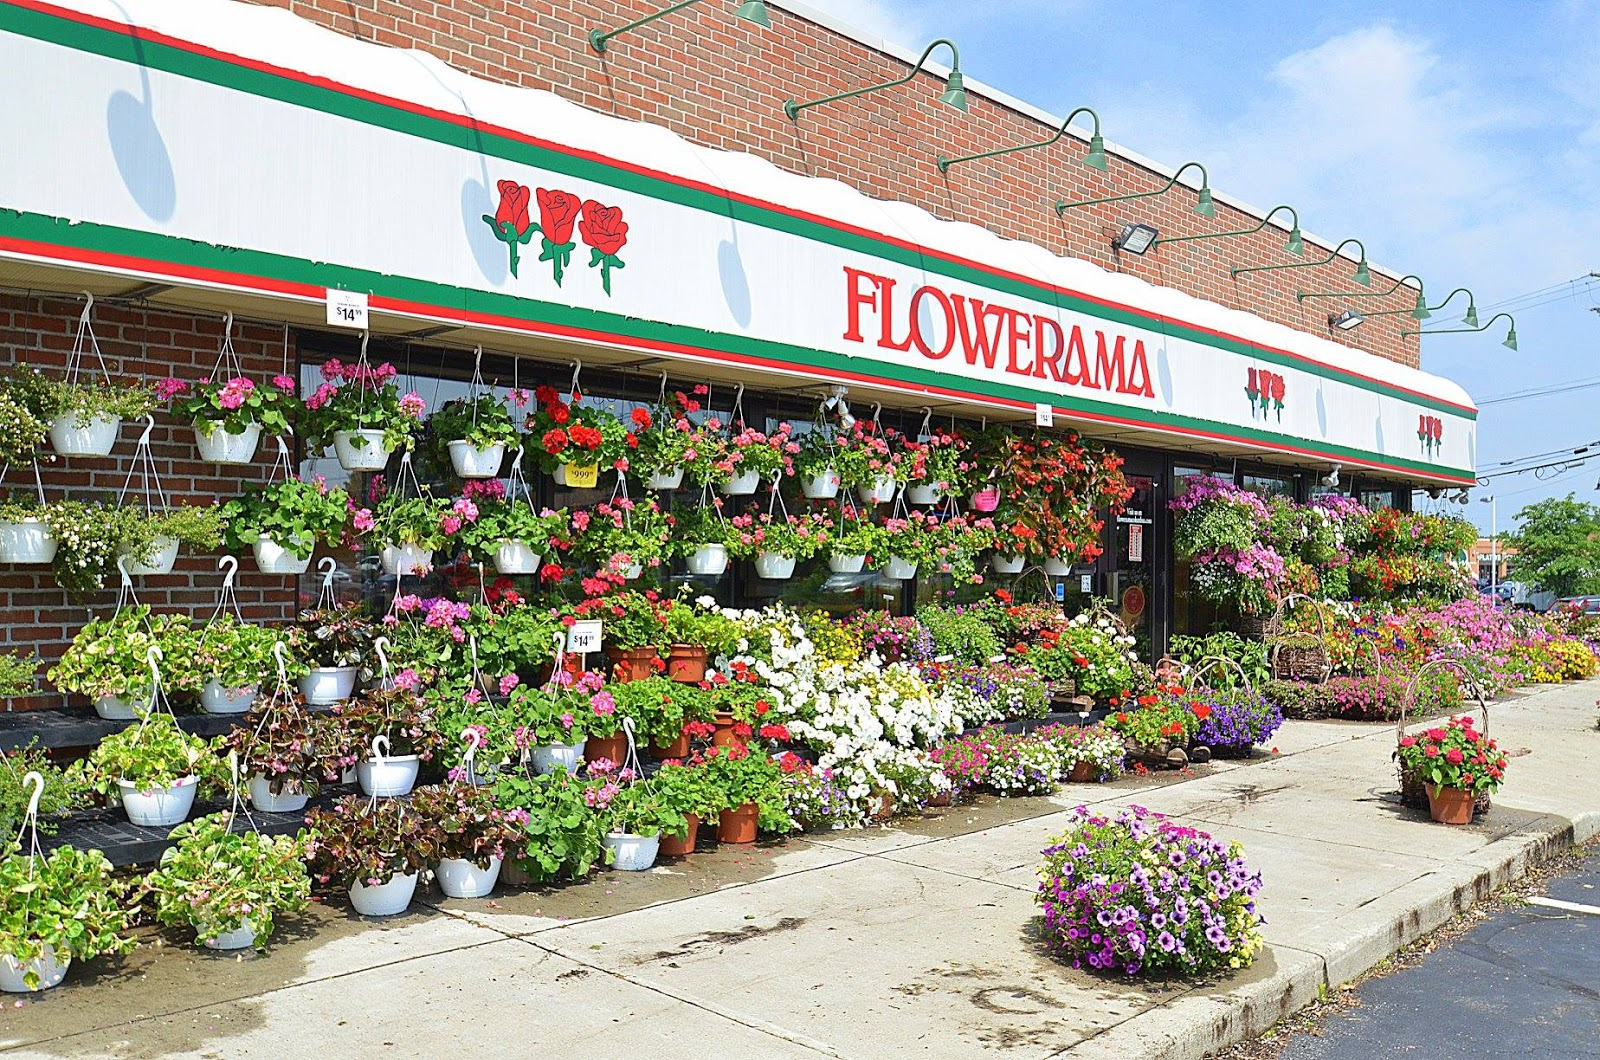 A shot of the outside of Flowerama's store. There are dozens of hanging flowers in front of the store.